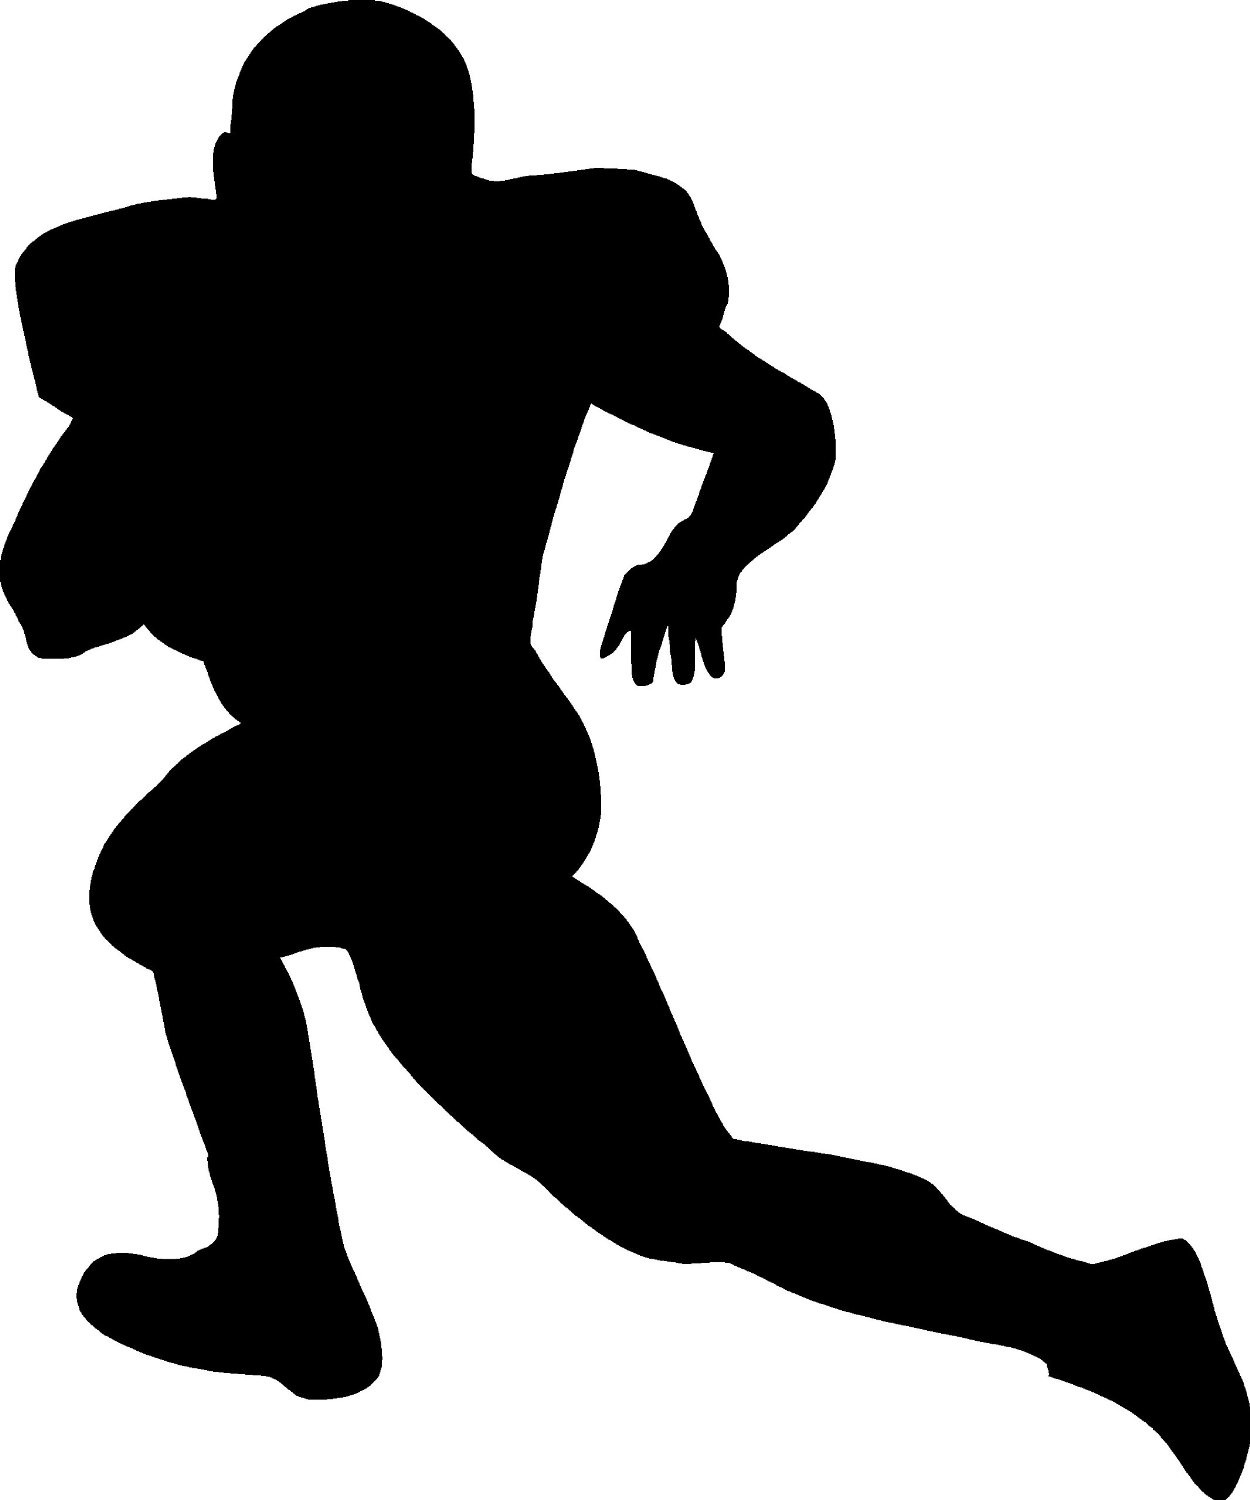 1250x1500 Image Of American Football Game Clipart 8875 Silhouettes People